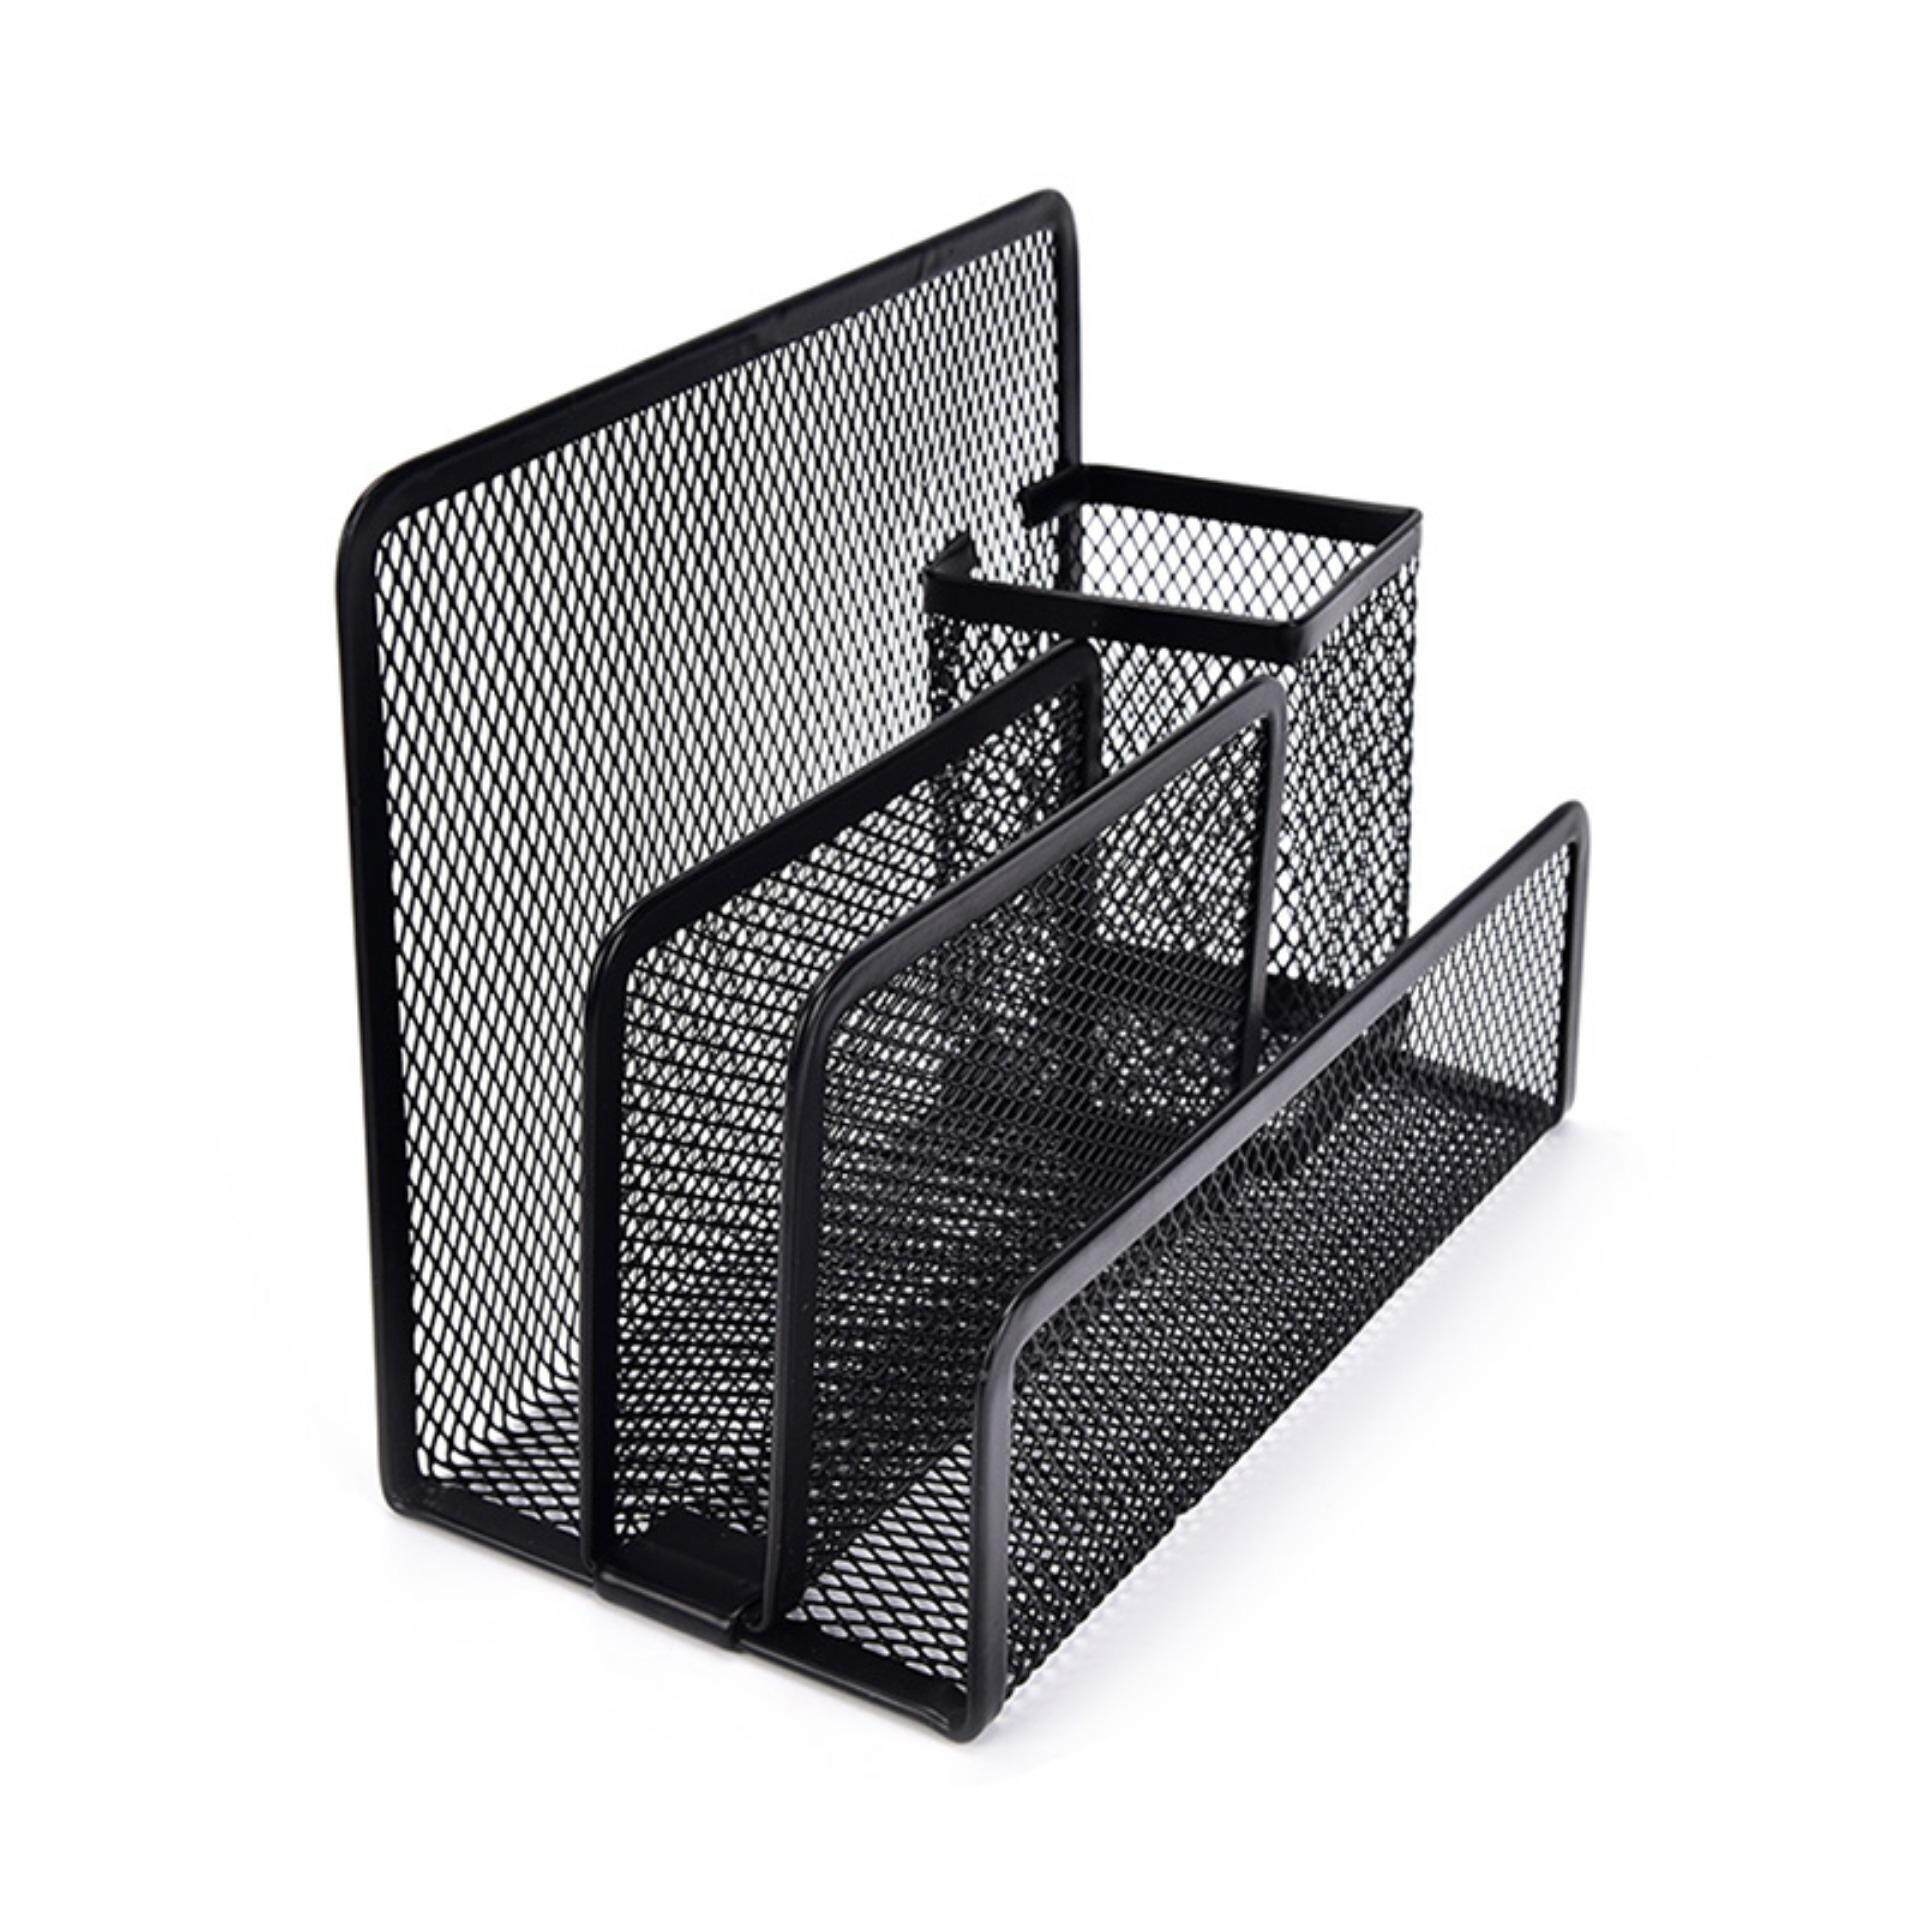 Offices promotion Mesh Letter Paper File Storage Rack Holder Tray - intl